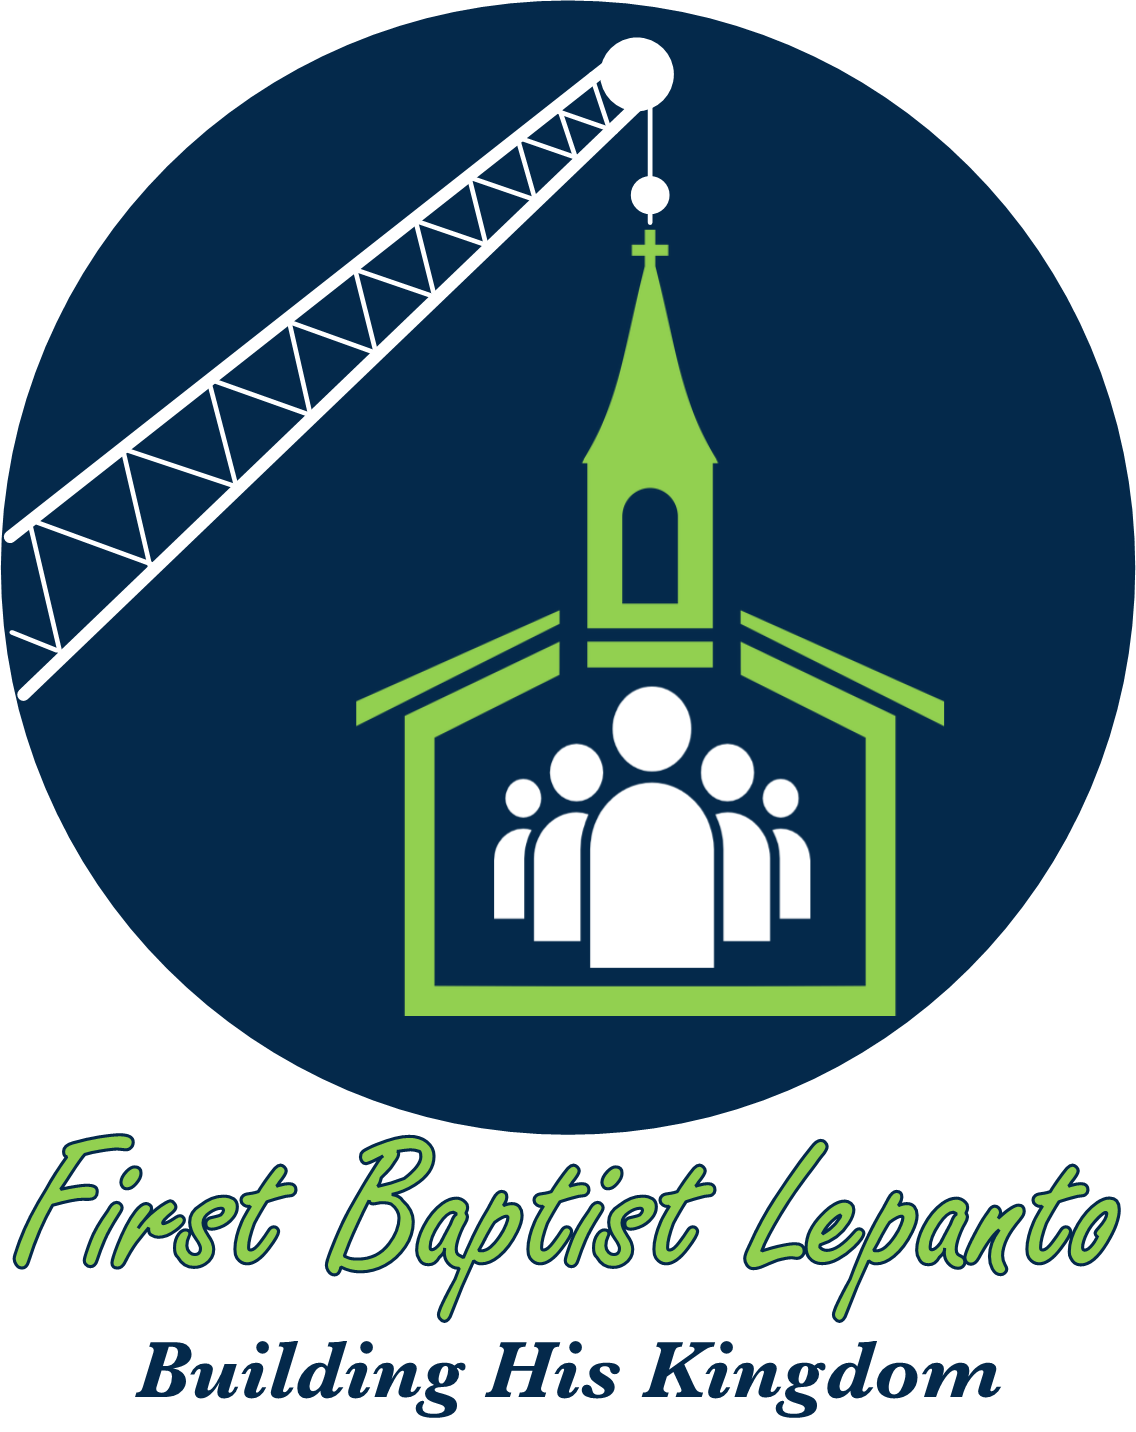 First Baptist Church of Lepanto